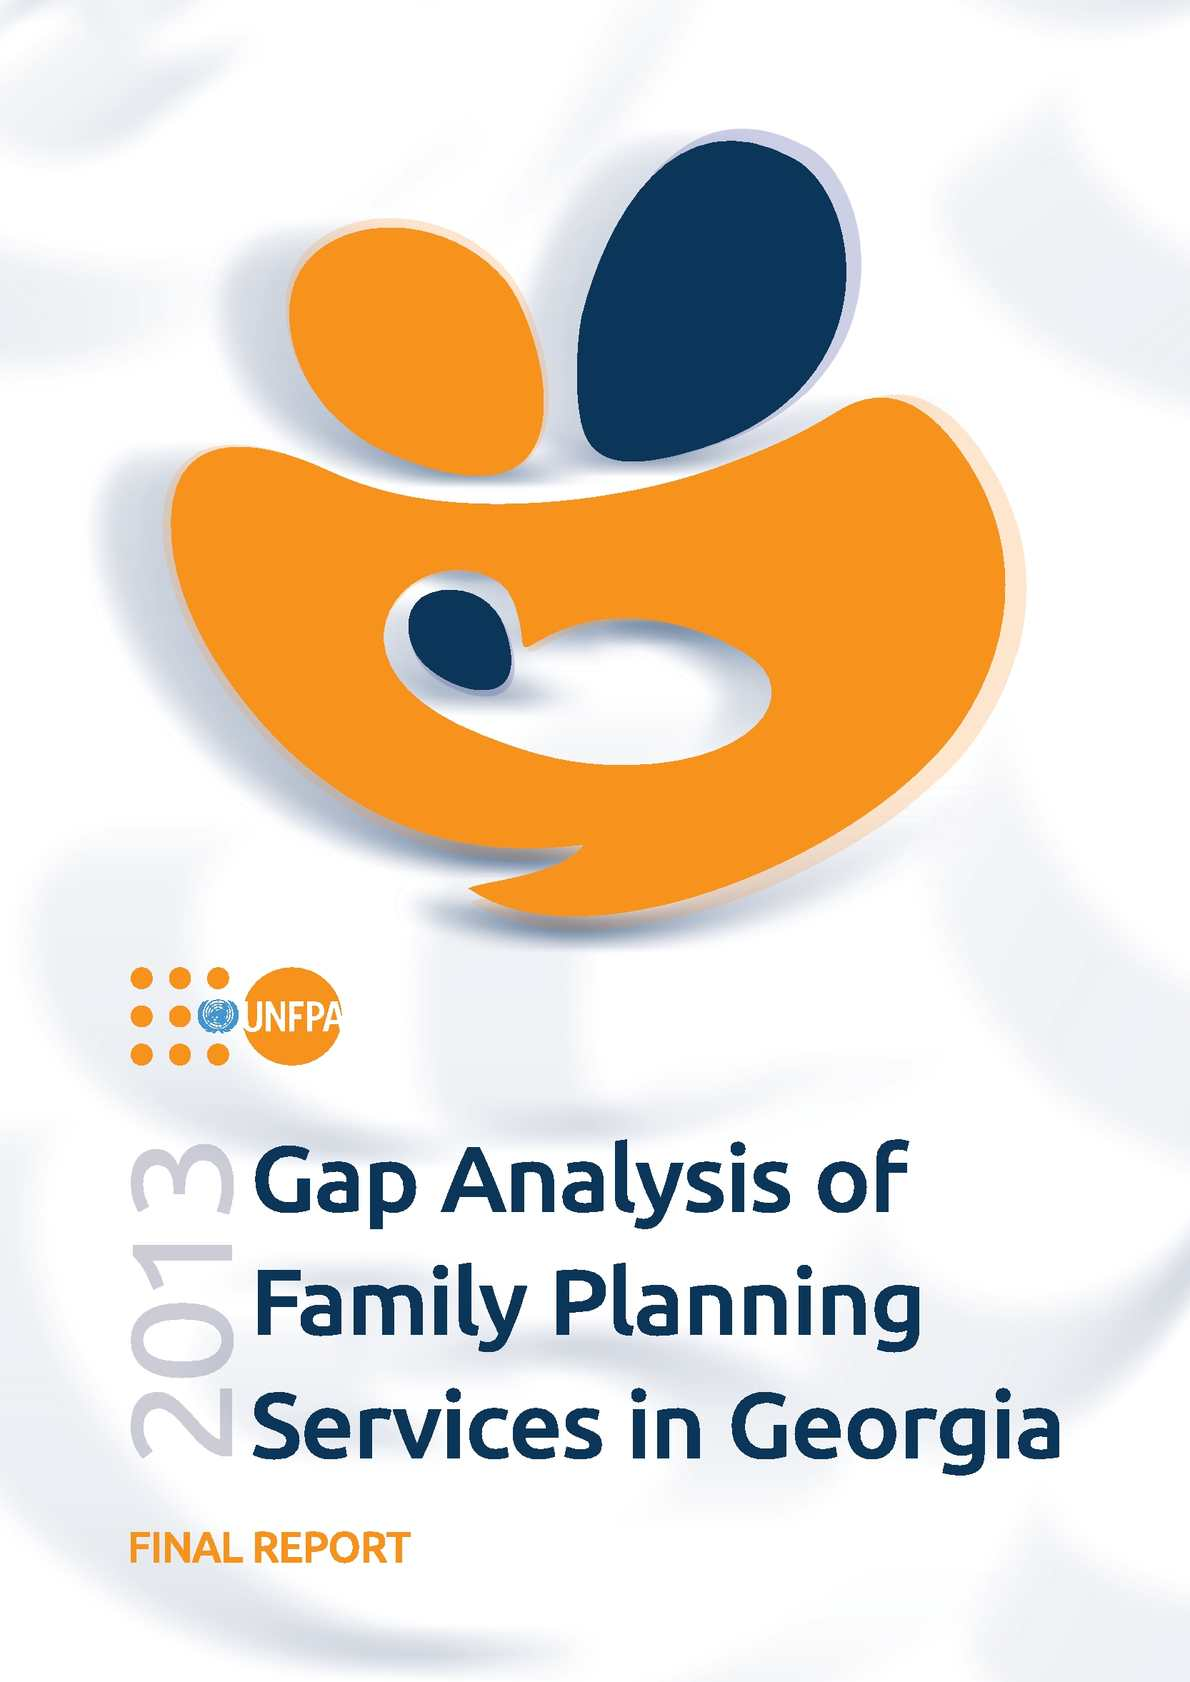 an analysis of family planning and contraception This situation analysis aims to review the evidence on current models of community-to-facility referrals for long-acting and reversible contraception and permanent methods (larc/pm), to provide recommendations on promising models that should be tested for effectiveness, and to provide an agenda for future research.